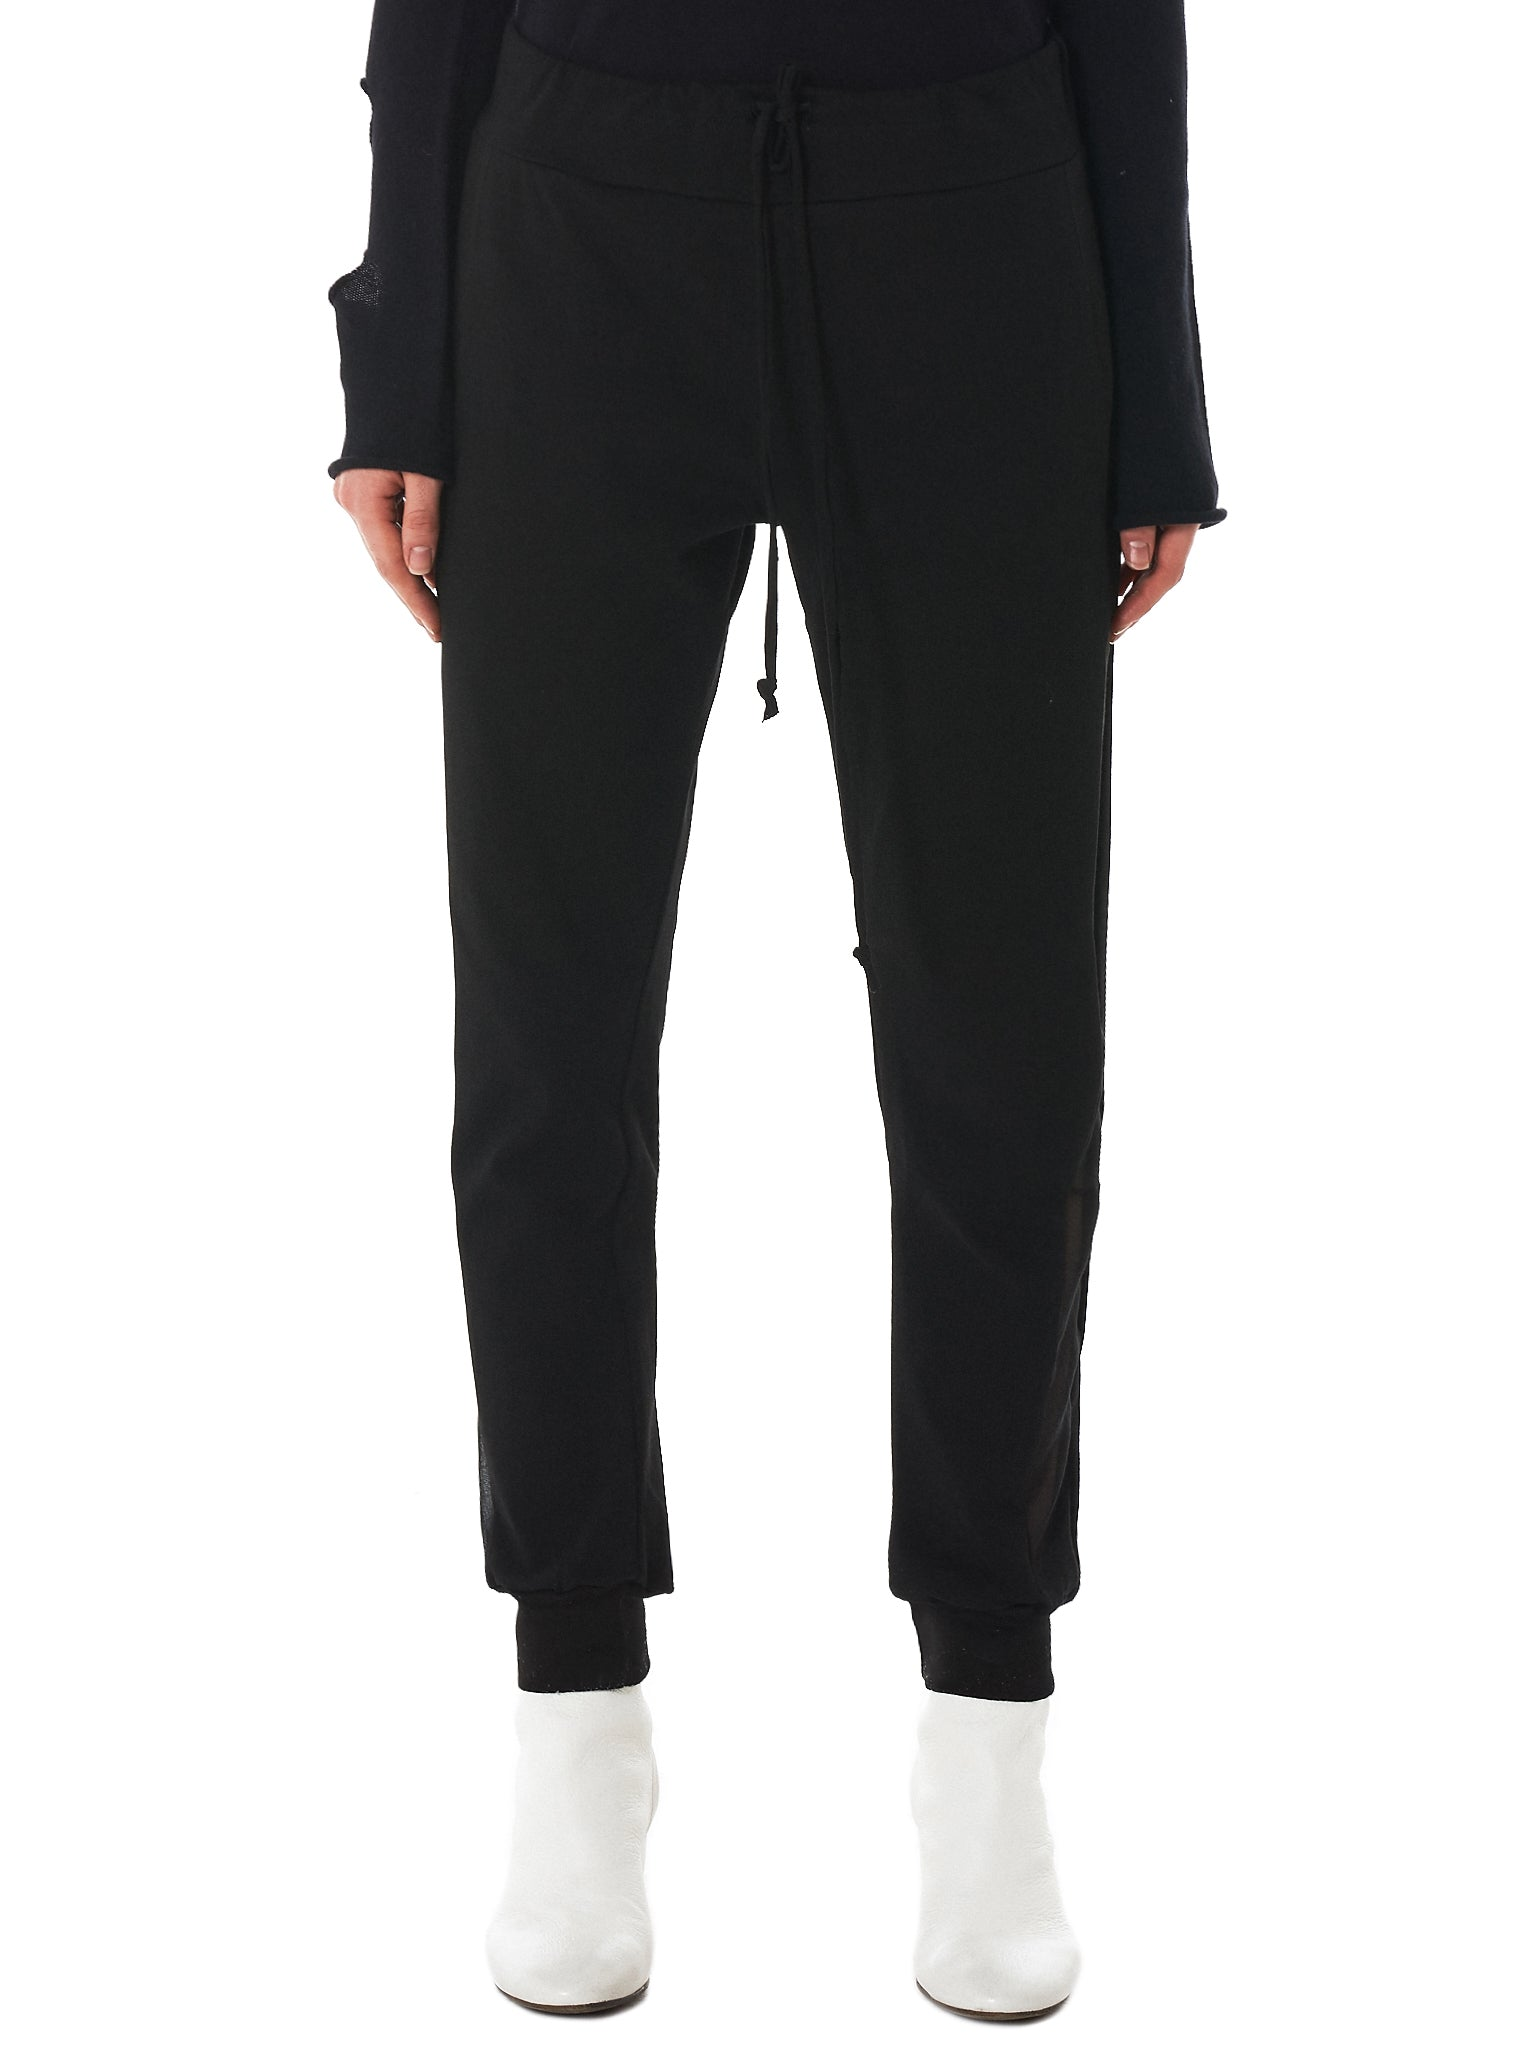 Latest Discount slim zip trousers - Black Lost And Found Rooms Sale Visit New Popular And Cheap Very Cheap Price Discount Codes Really Cheap NTz3dWkq